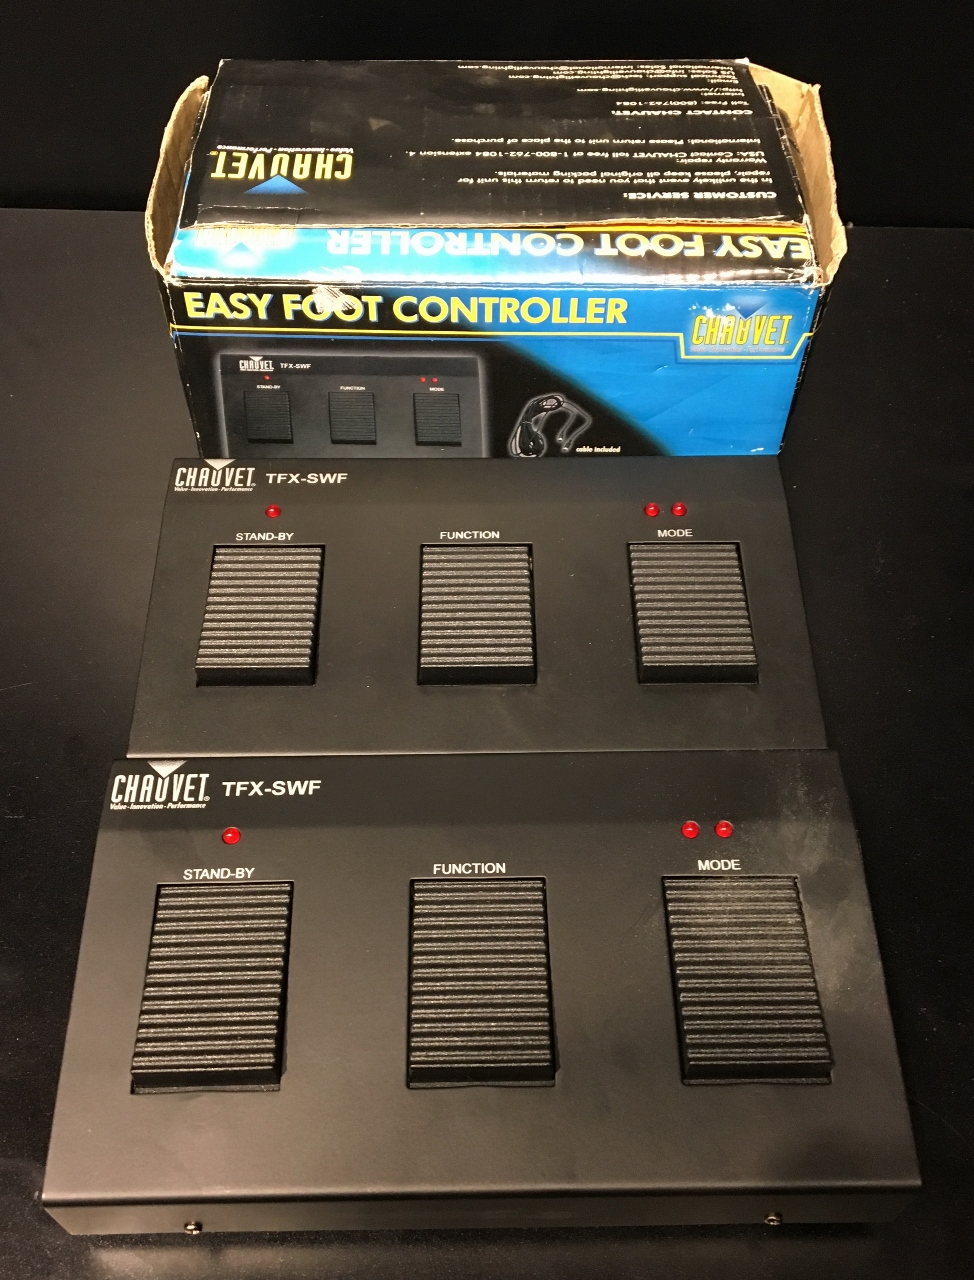 Chauvet - EASY FOOT CONTROLLER